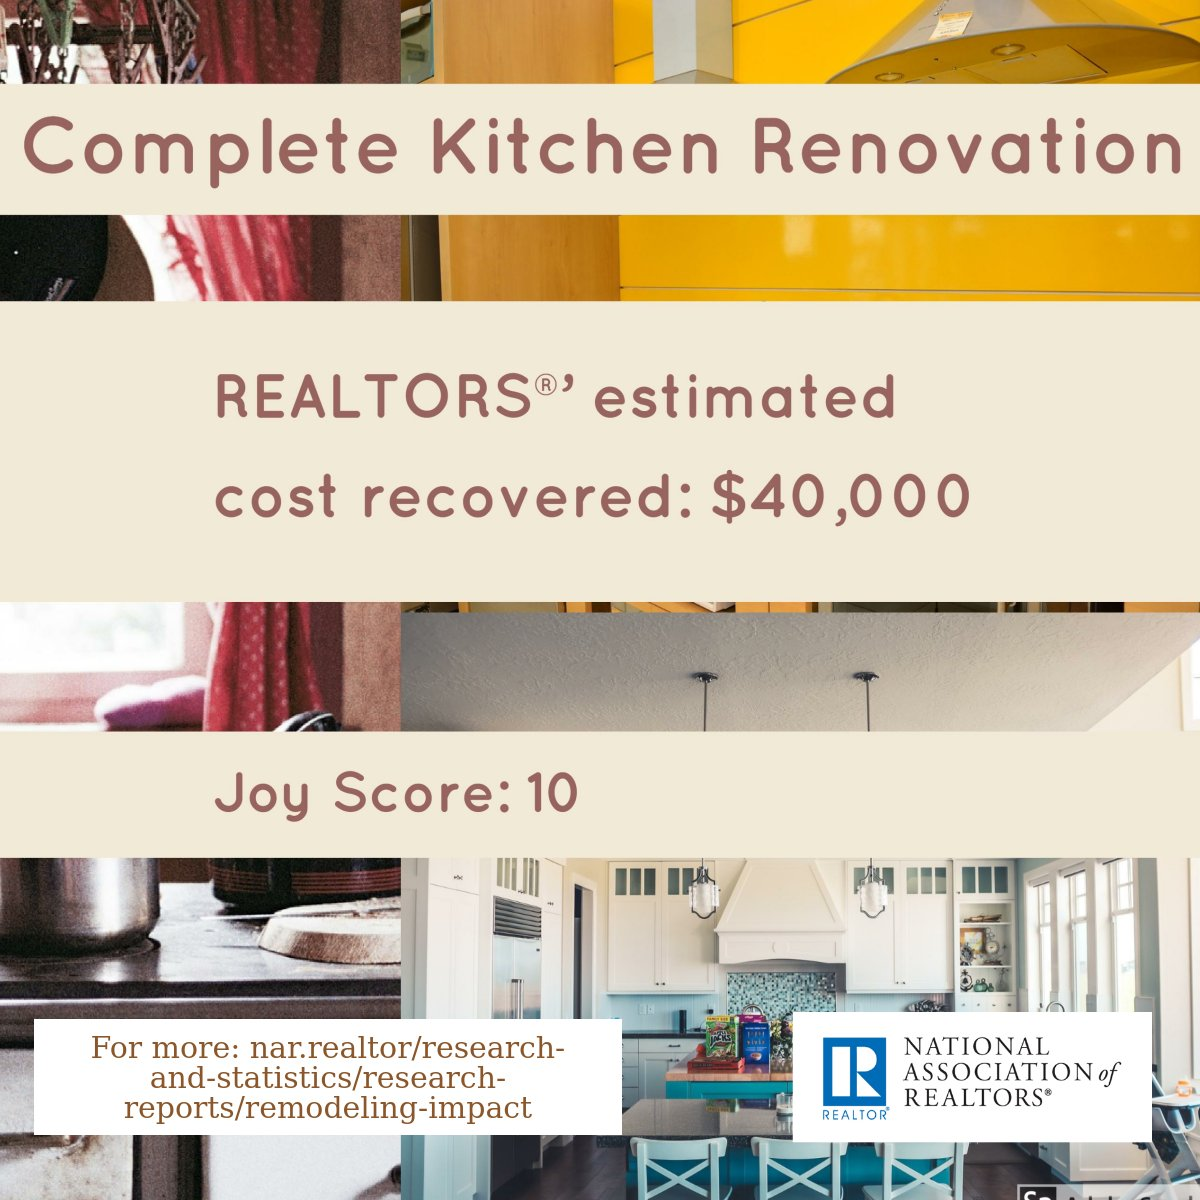 Kitchen Remodel Estimated Cost Recovered